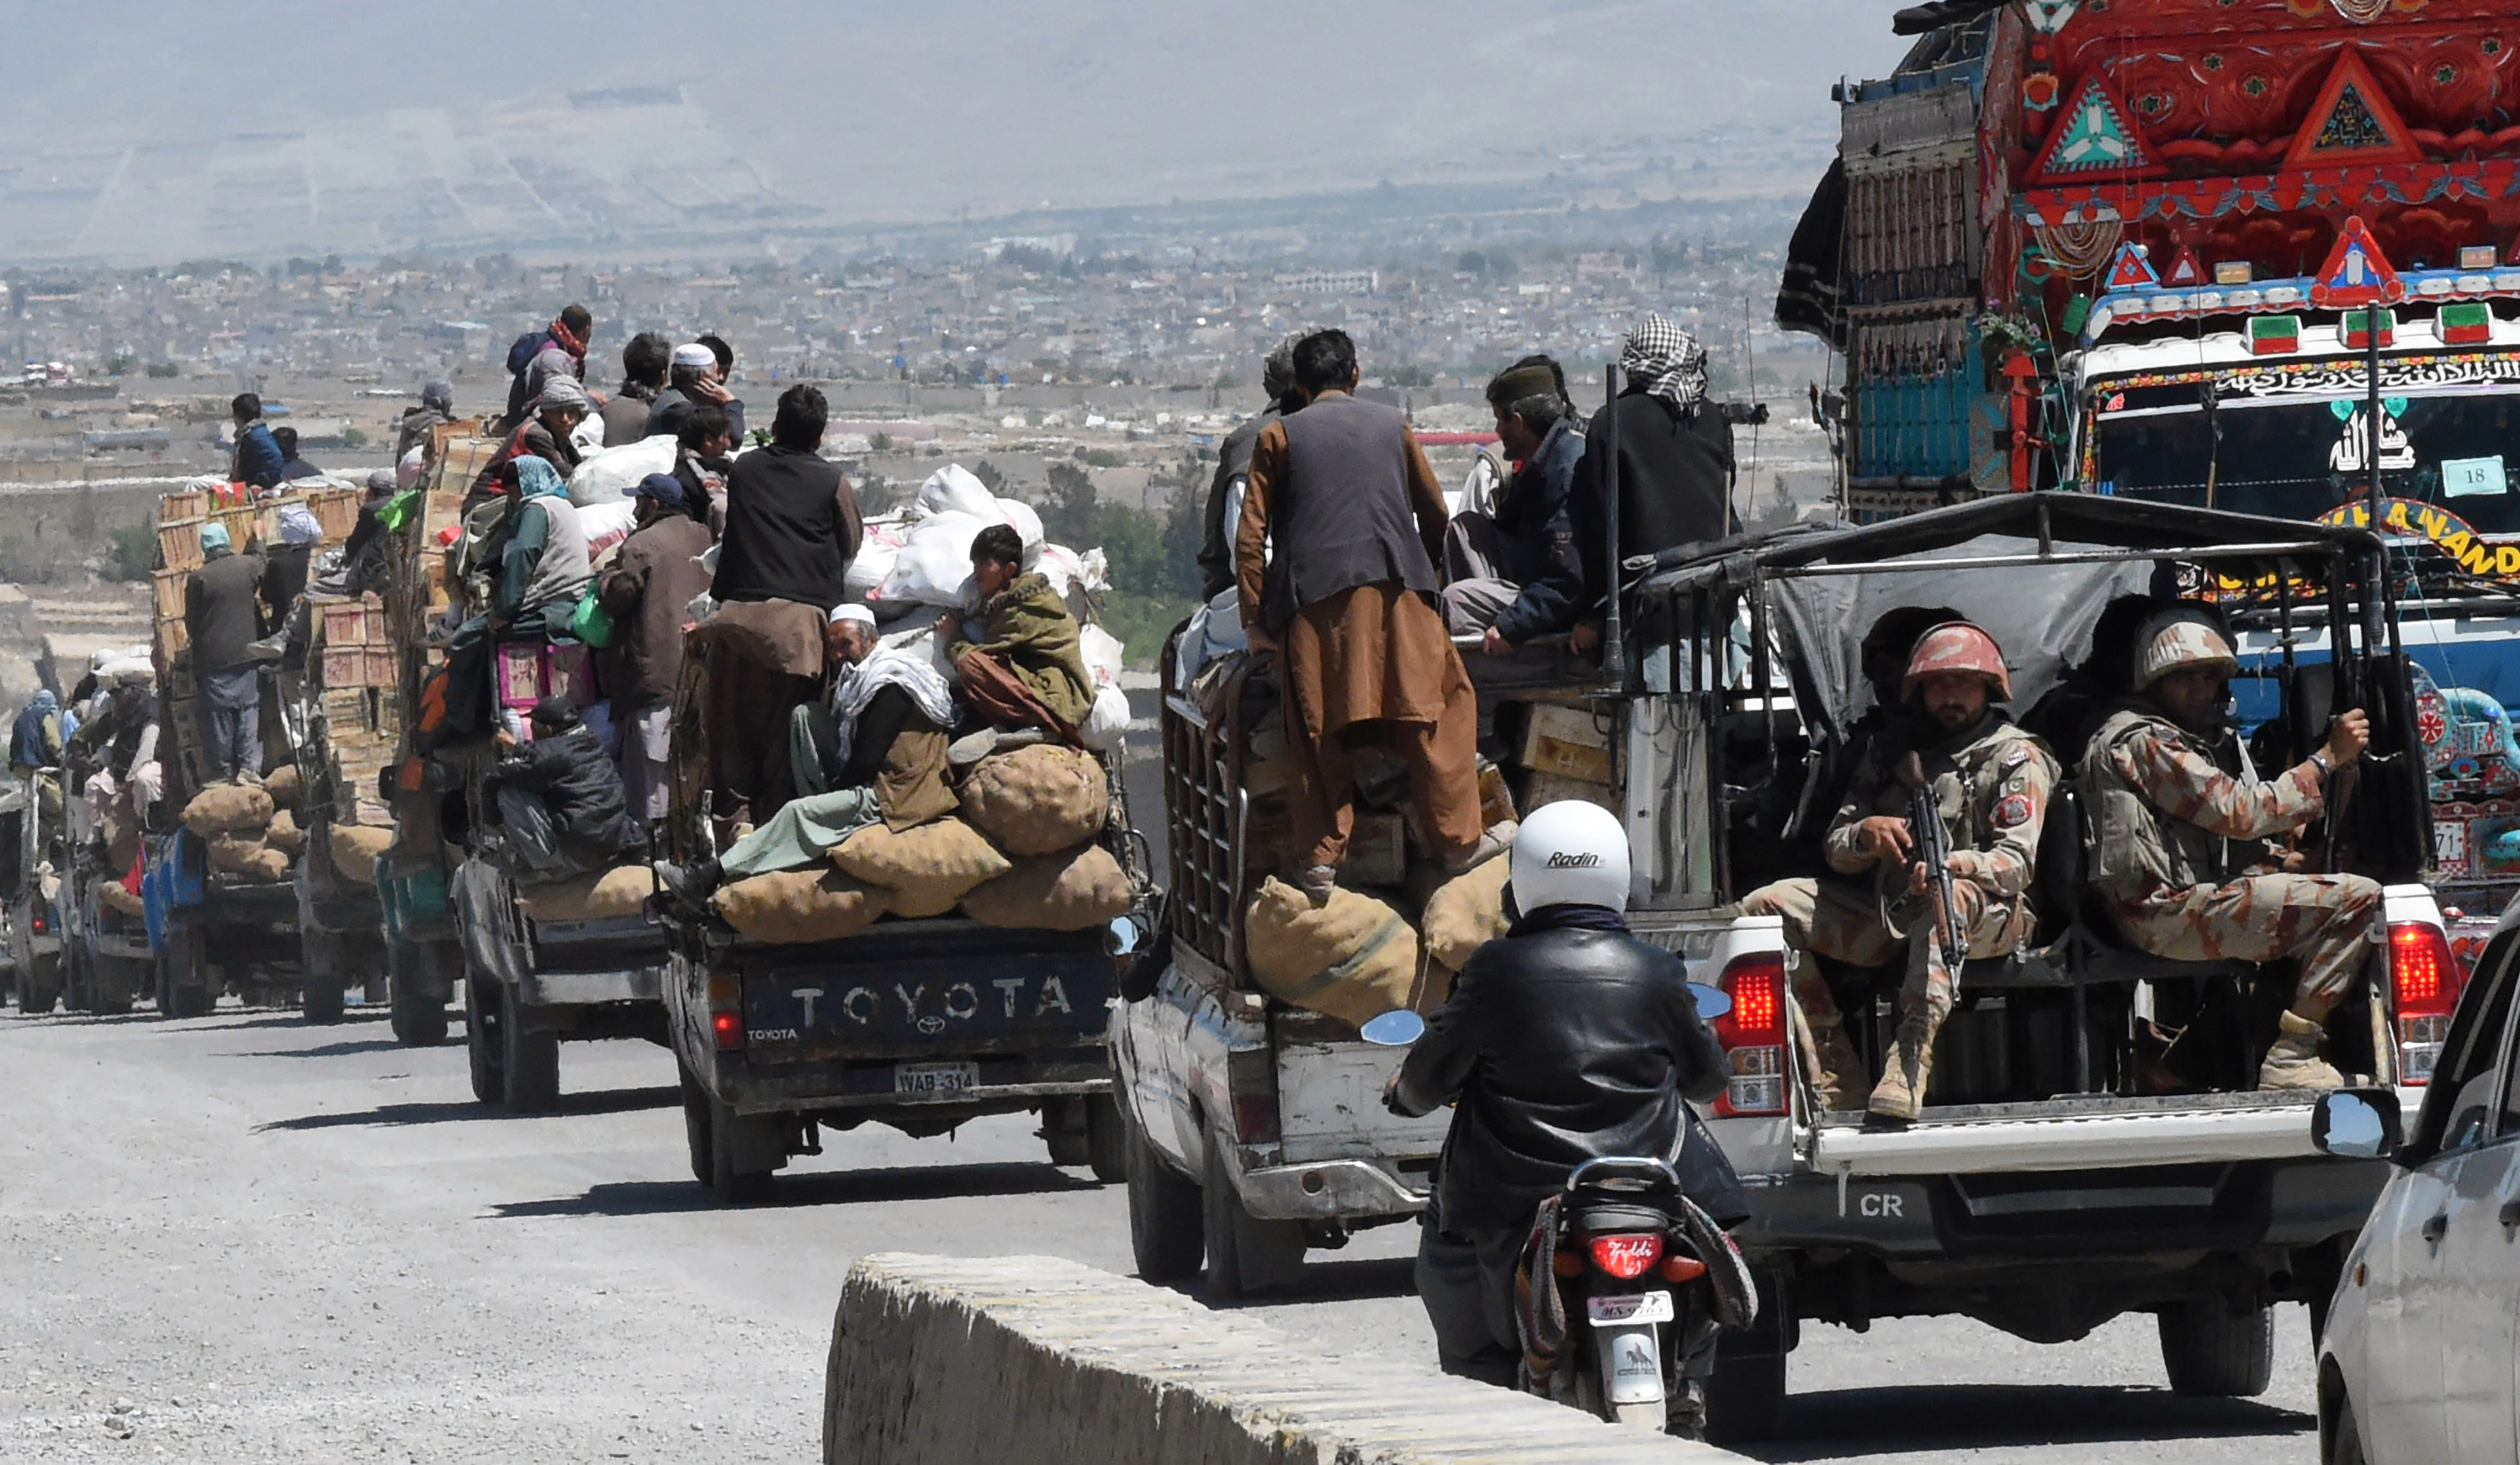 Pakistani paramilitary soldiers escort vehicles carrying Shiite Hazara minority traders and their fruit and vegetables on the way back from a market to a heavily guarded enclave where they live on the outskirts of Quetta.  (Photo by BANARAS KHAN/AFP/Getty Images)